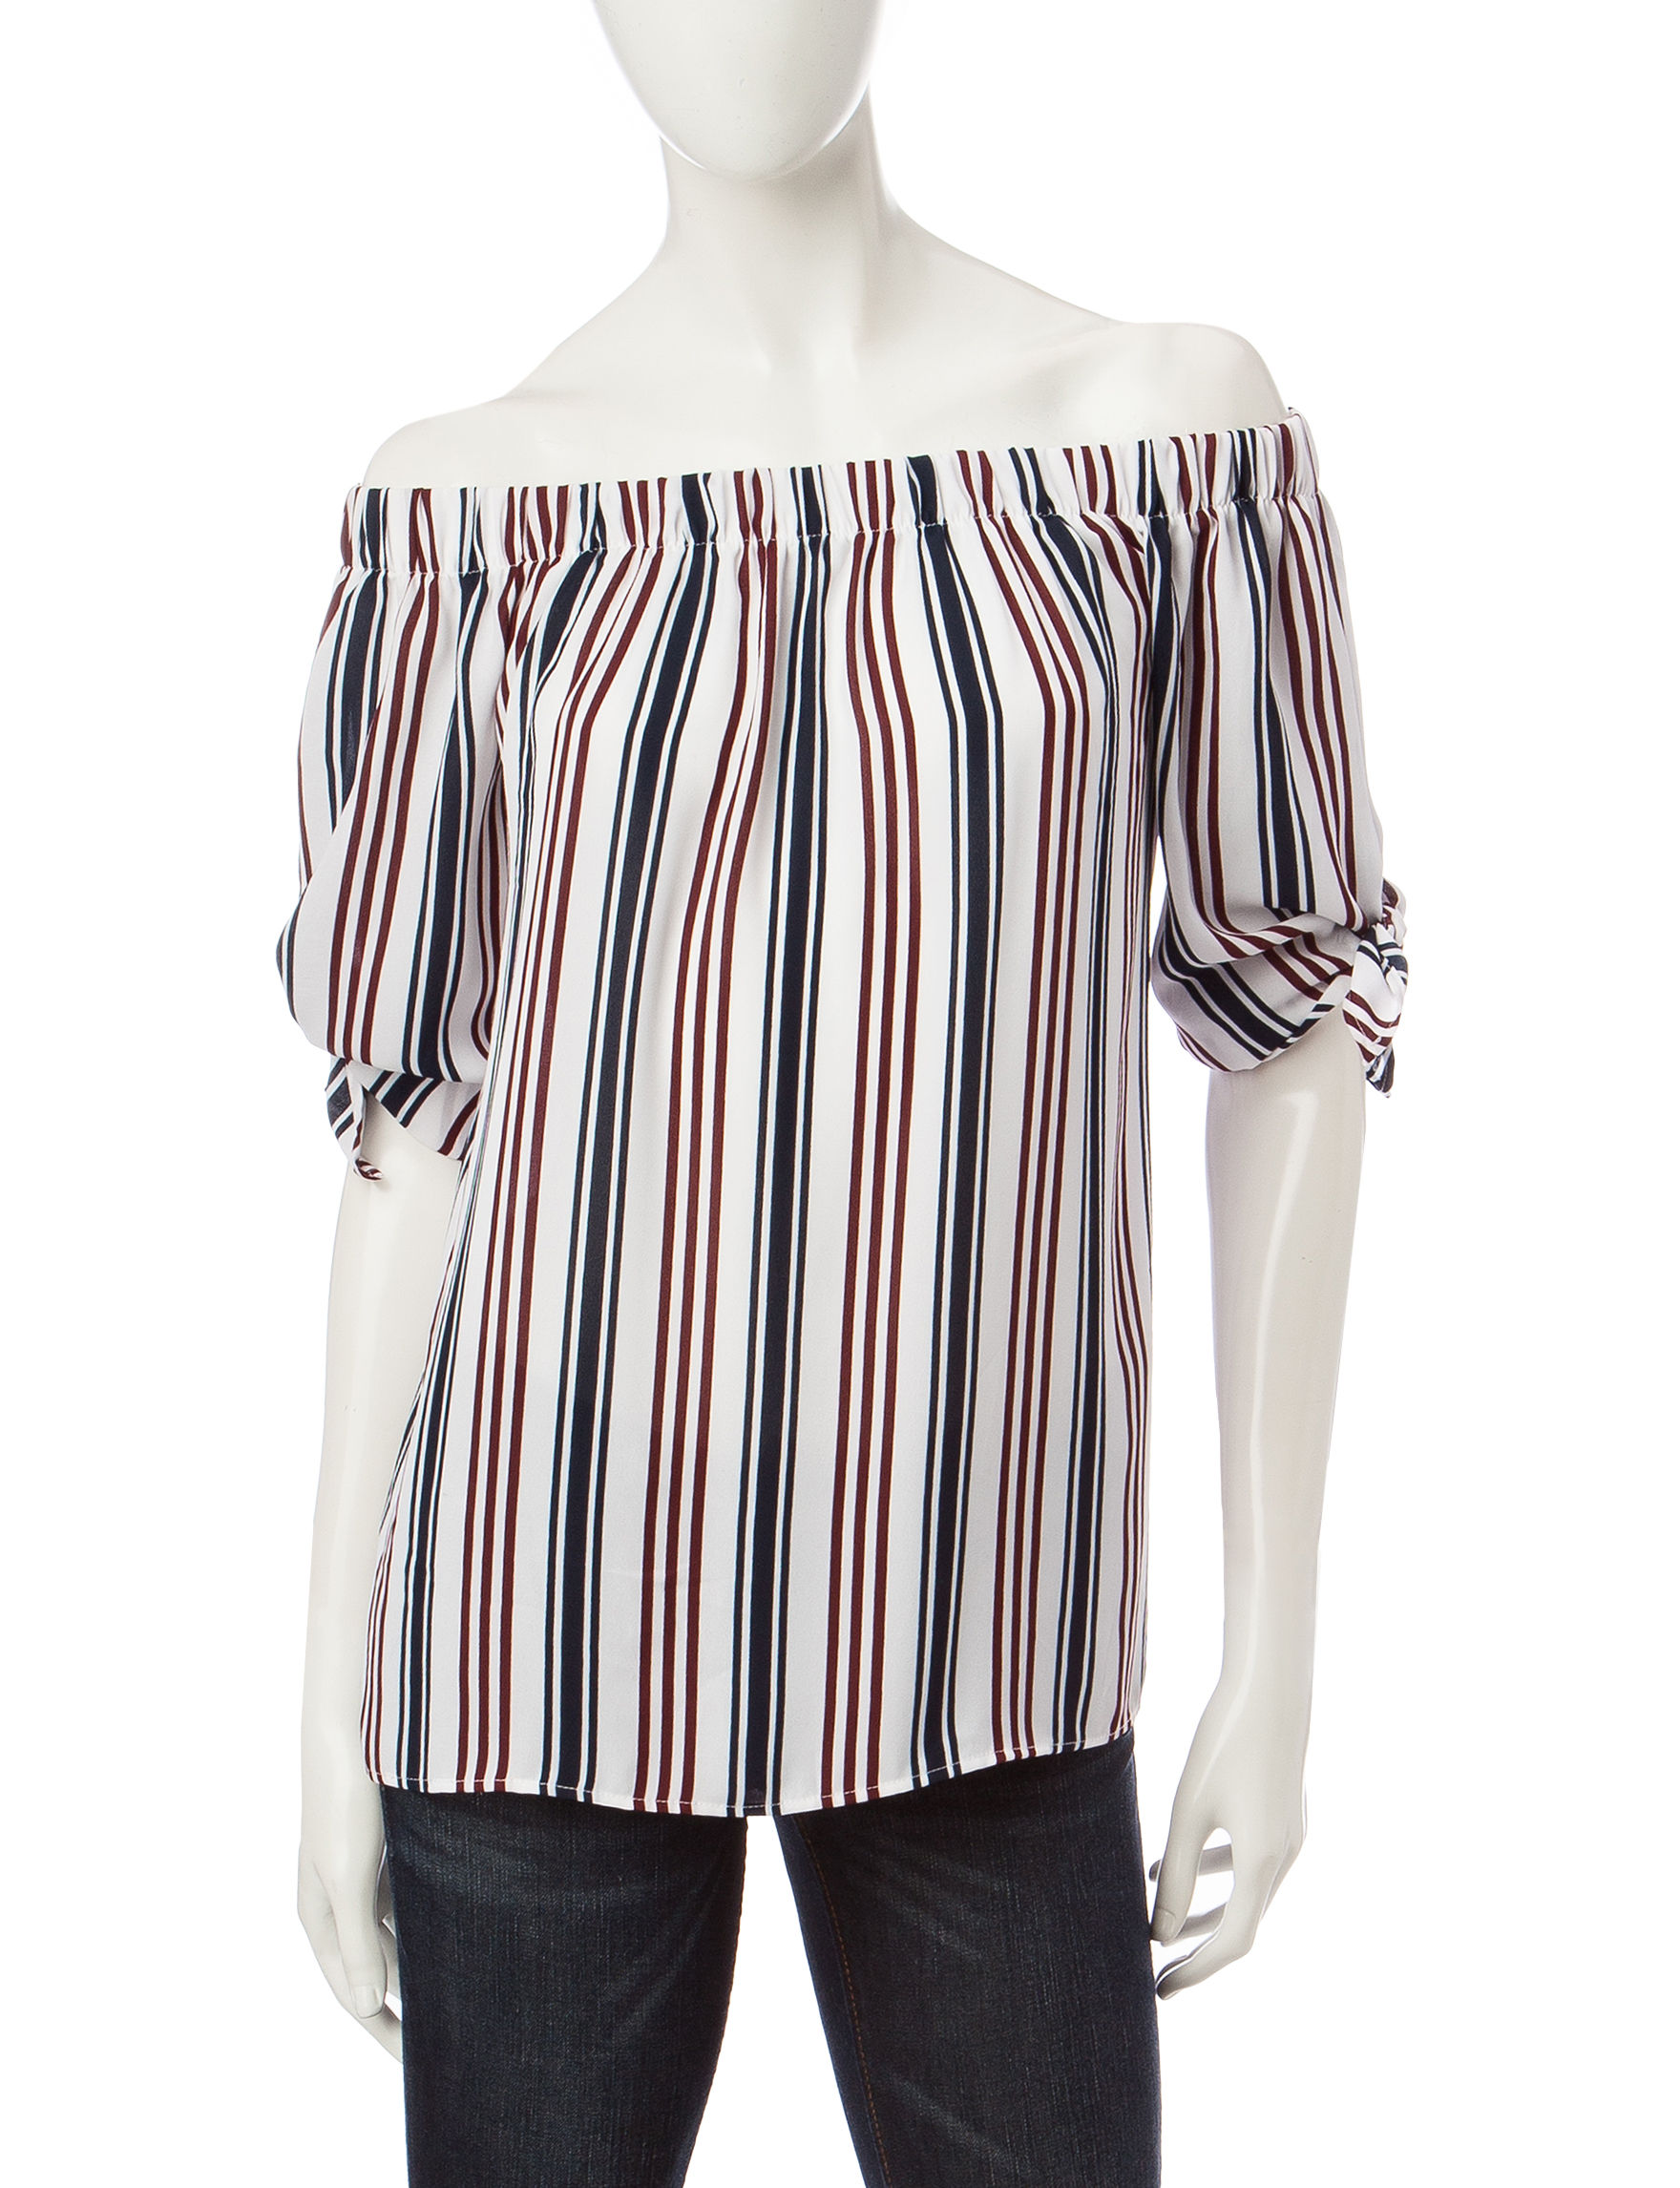 Wishful Park Navy Stripe Pull-overs Shirts & Blouses